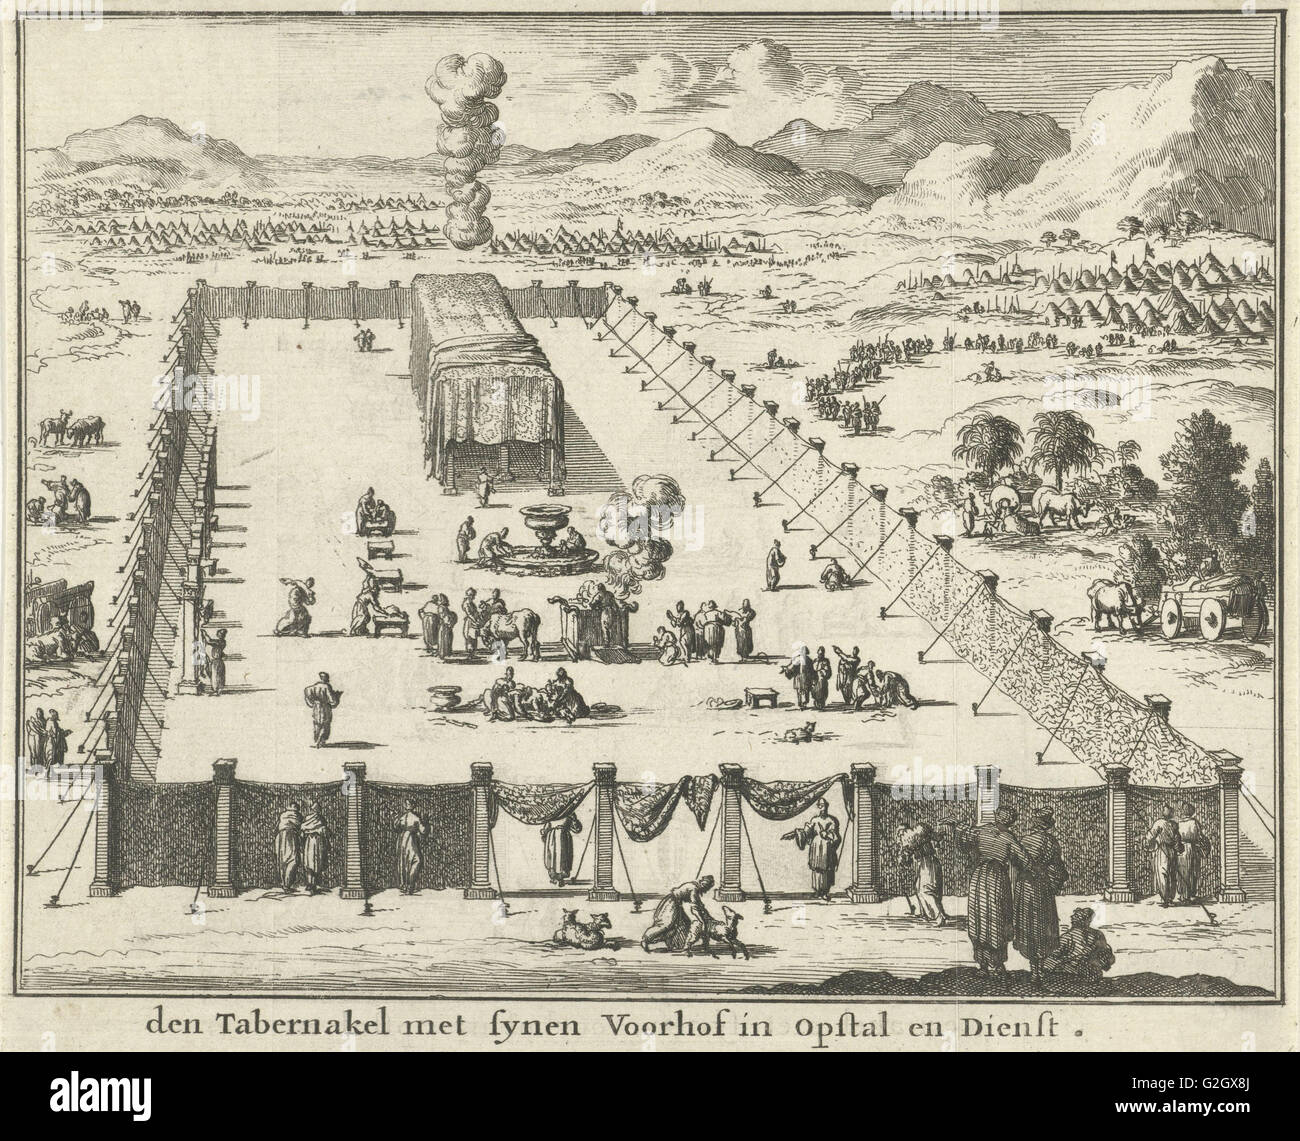 View of the court and the Tabernacle, Jan Luyken, Willem Goeree, 1683 - Stock Image